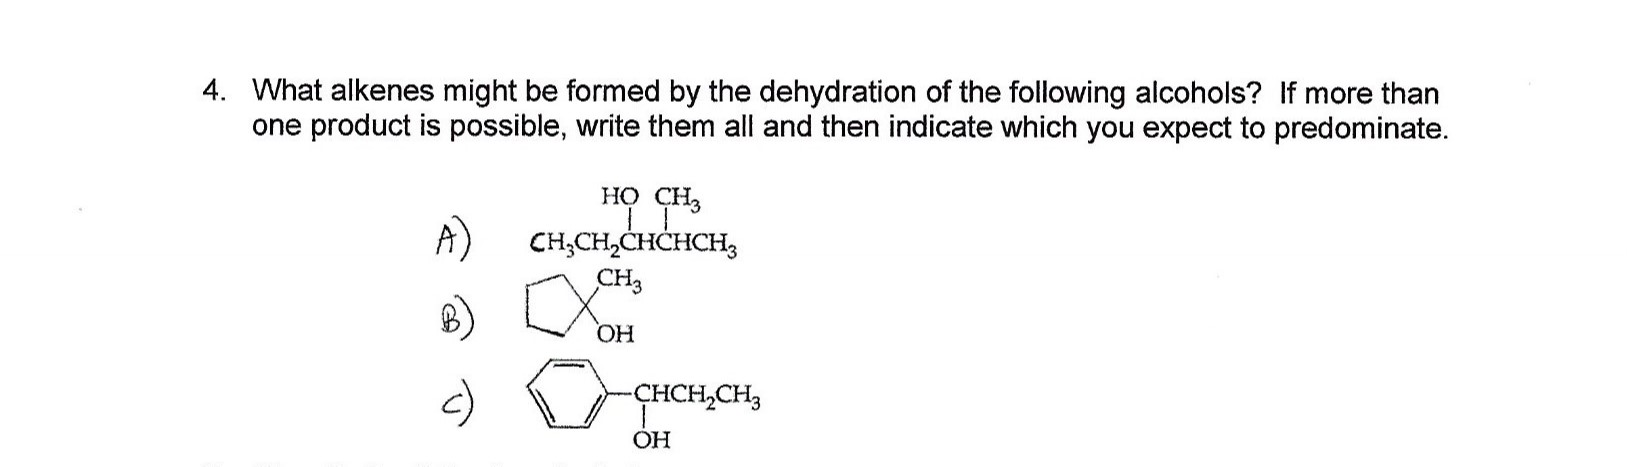 4. What alkenes might be formed by the dehydration of the following alcohols? If more than one product is possible, write them all and then indicate which you expect to predominate. но сн, A) CH,CH2CHCHCH3 сHз ОН -ҫнCH,CH, OH